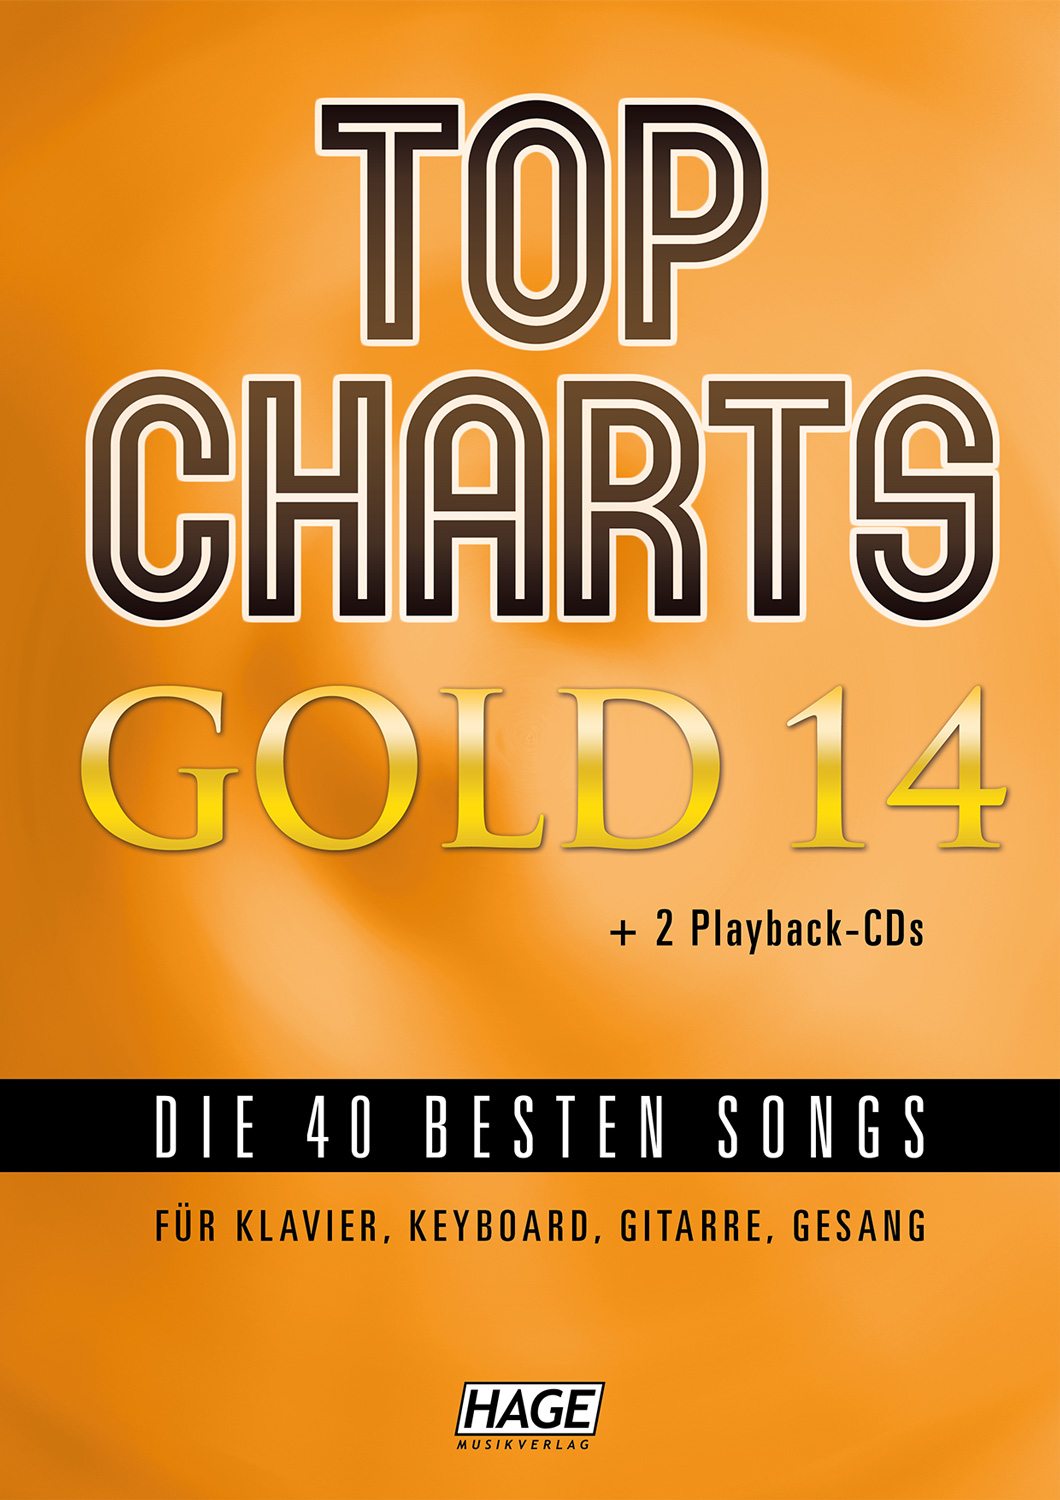 Top Charts Gold 14